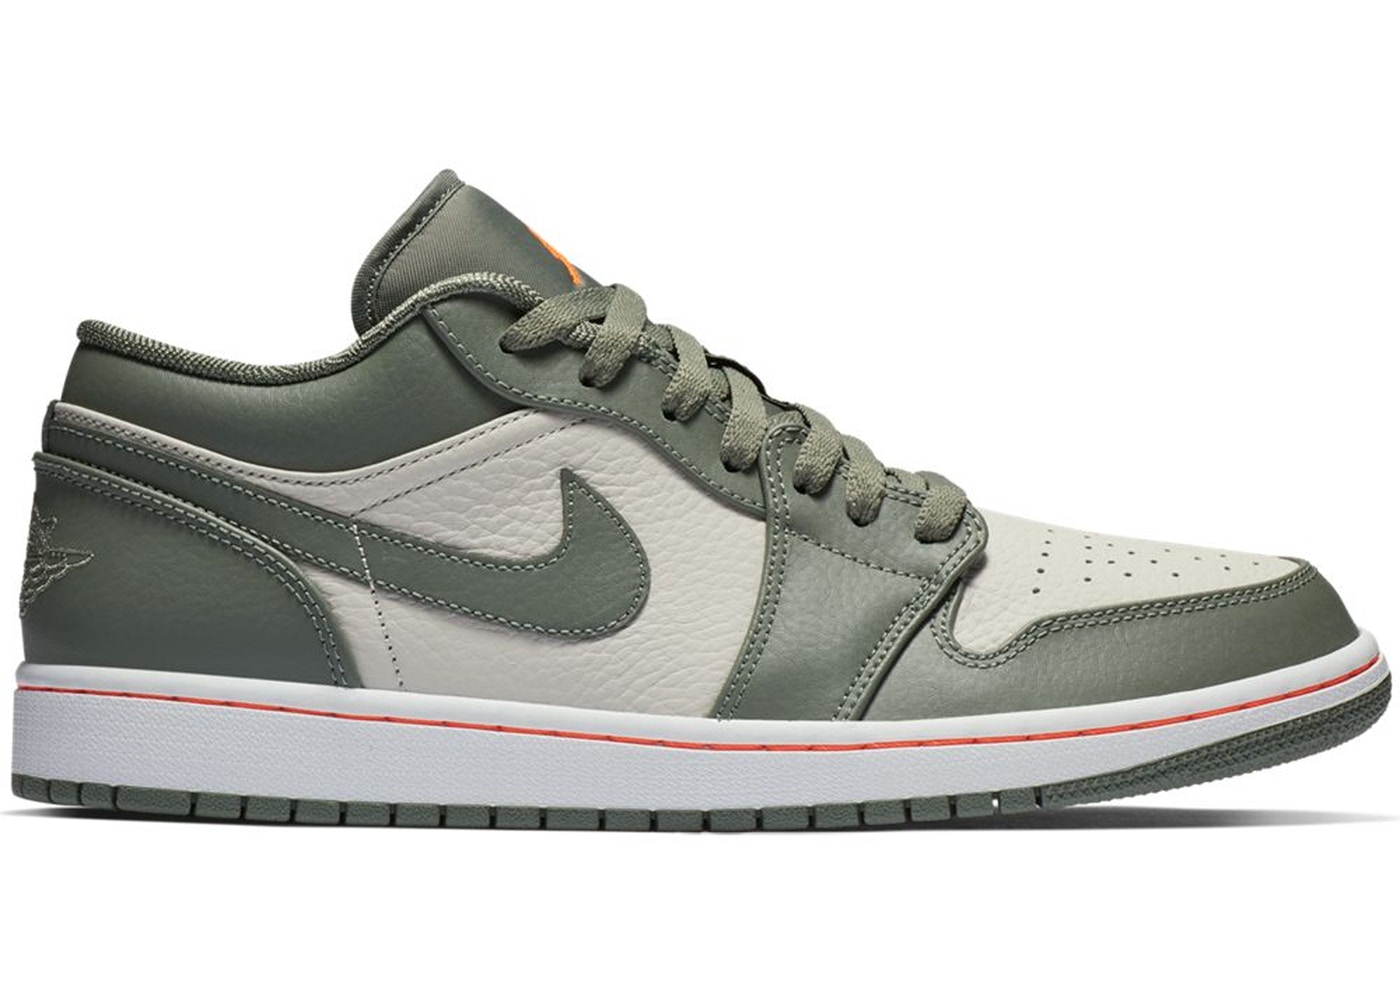 ナイキ ジョーダン JORDAN スニーカー 【 1 LOW MILITARY GREEN WHITE HYPER CRIMSONLIGHT BONEVINTAGE LICHEN 】 メンズ 送料無料